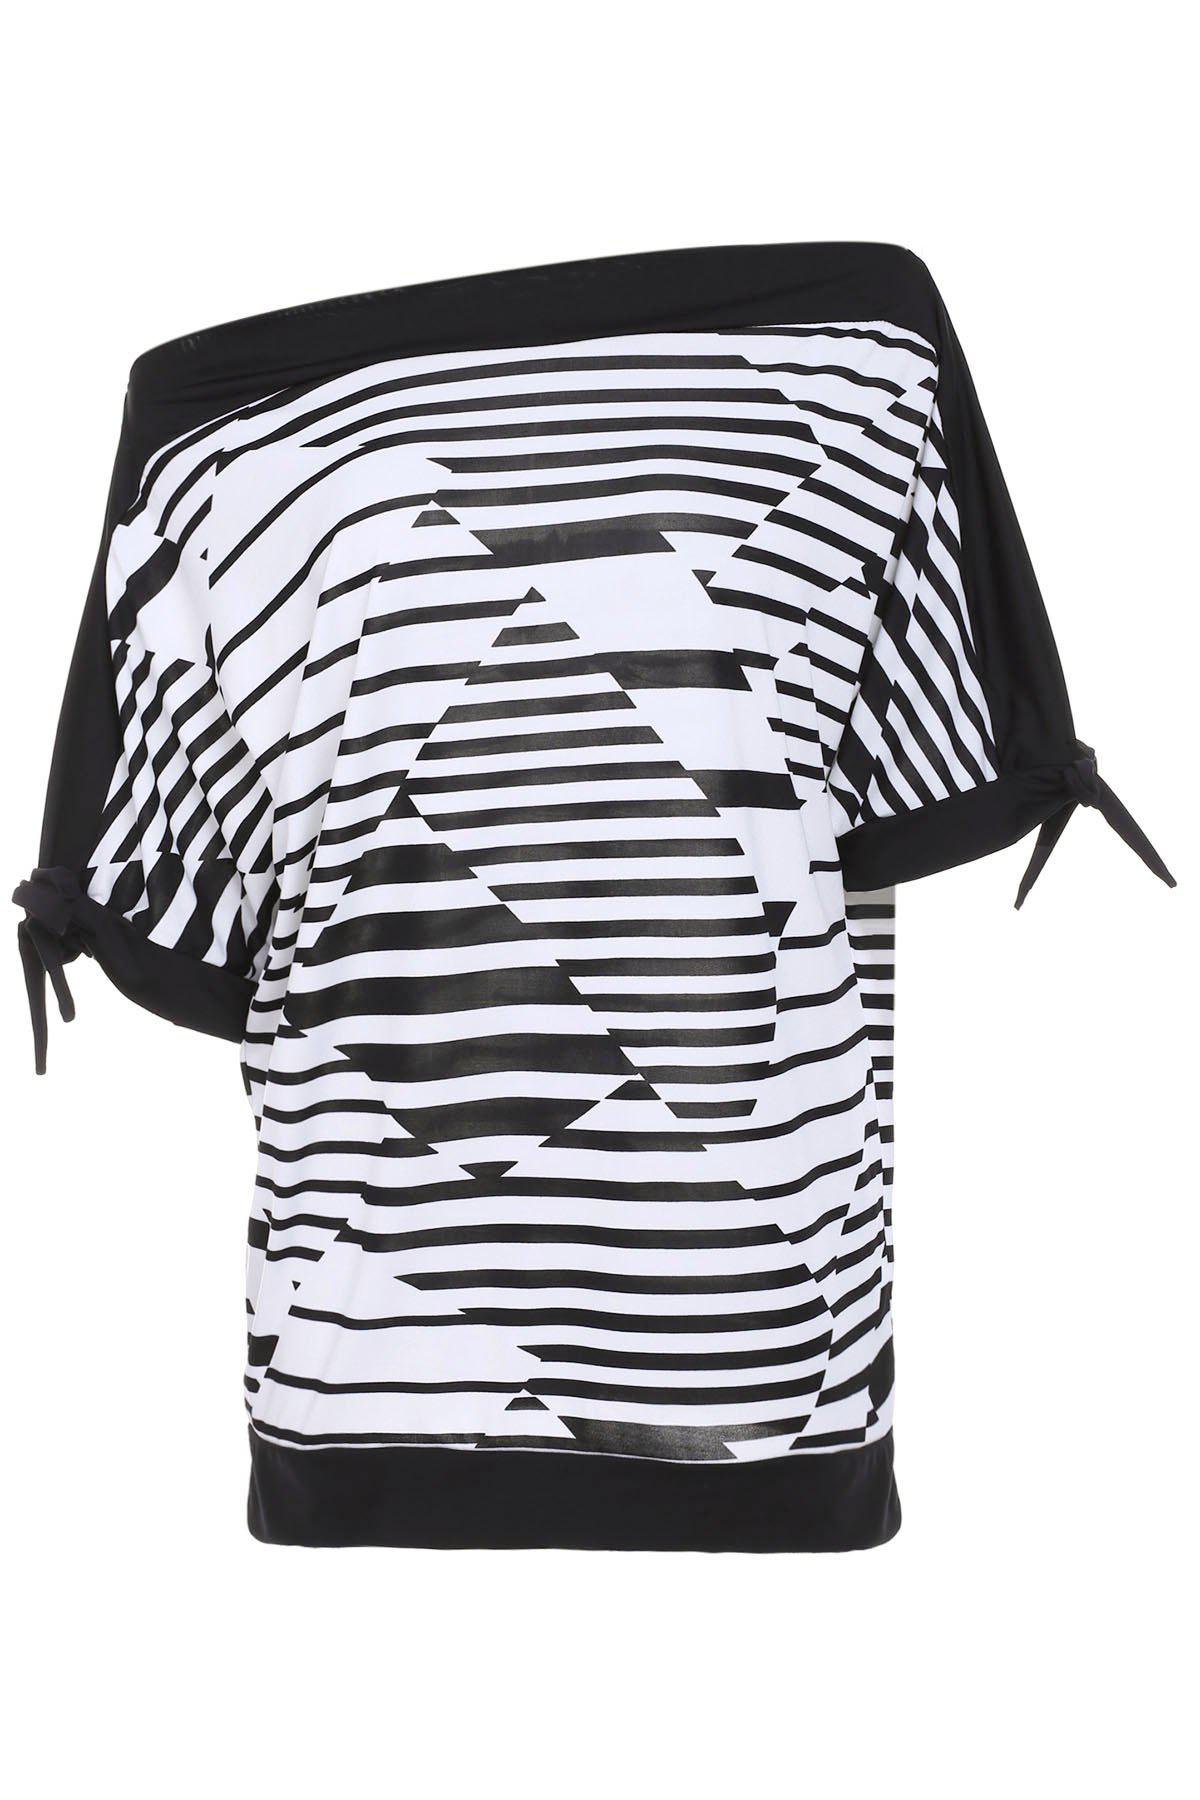 Casual Striped Short Sleeve Women's Plus Size T-Shirt - BLACK 3XL